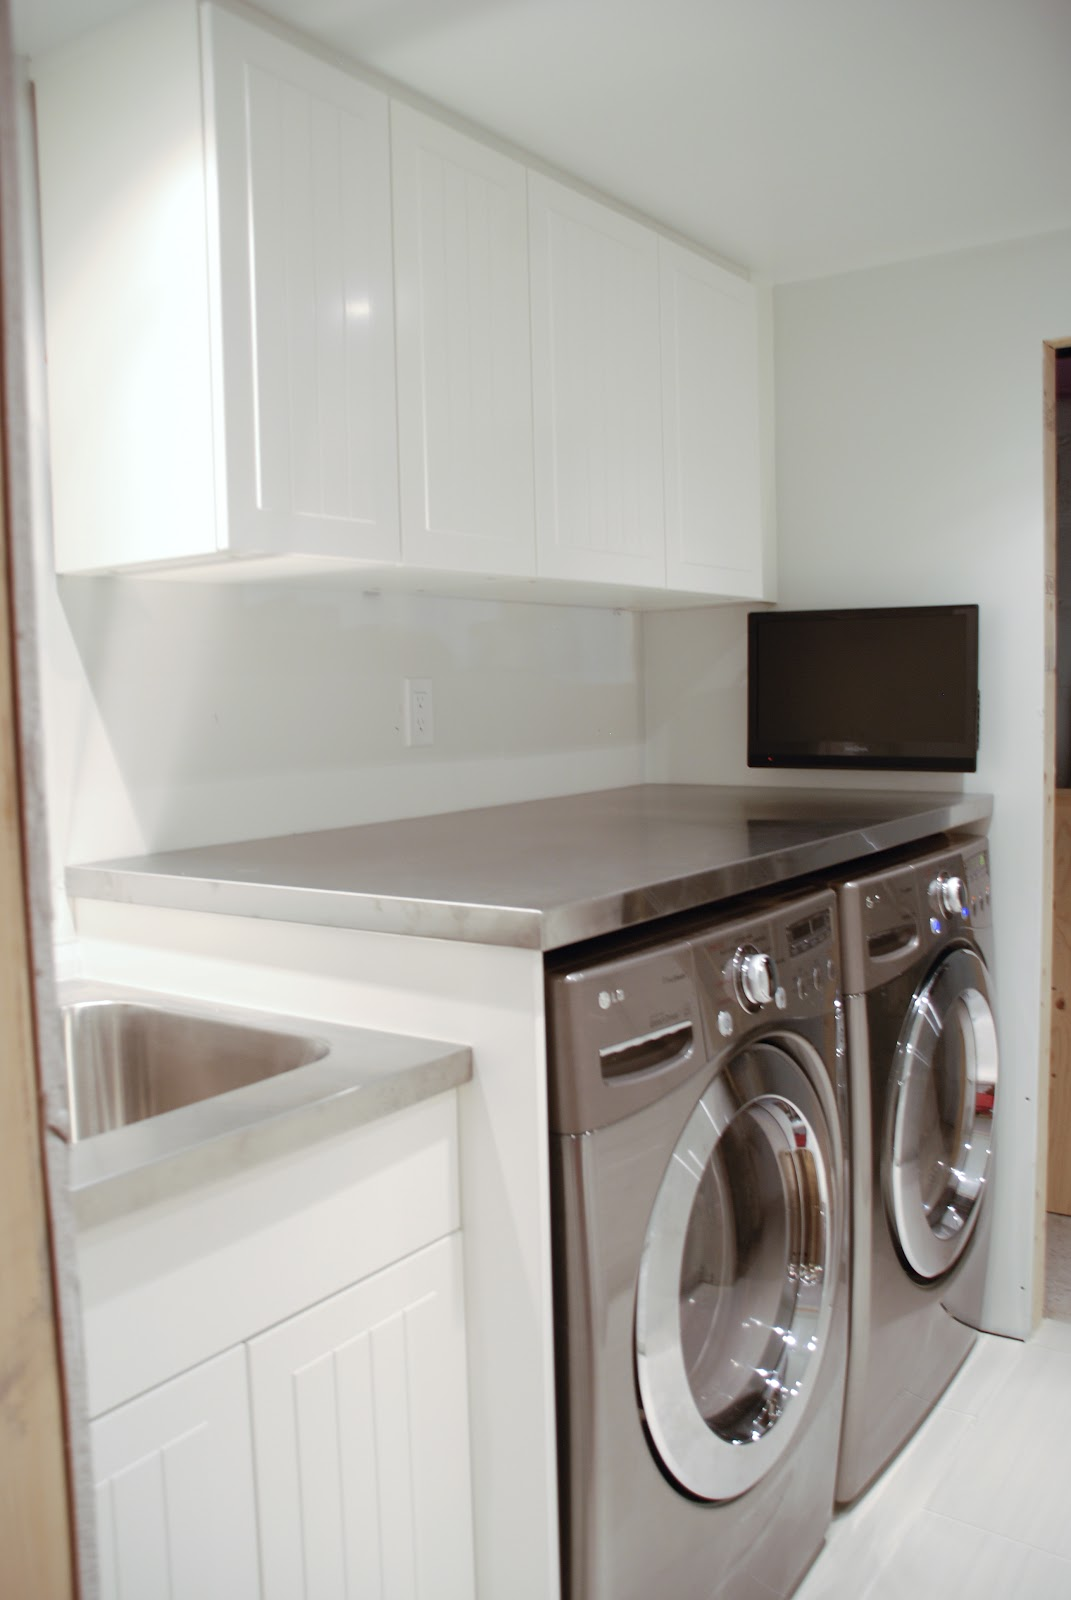 stainless steel countertop in laundry room, floating countertop in laundry room, counter over front load washer and dryer